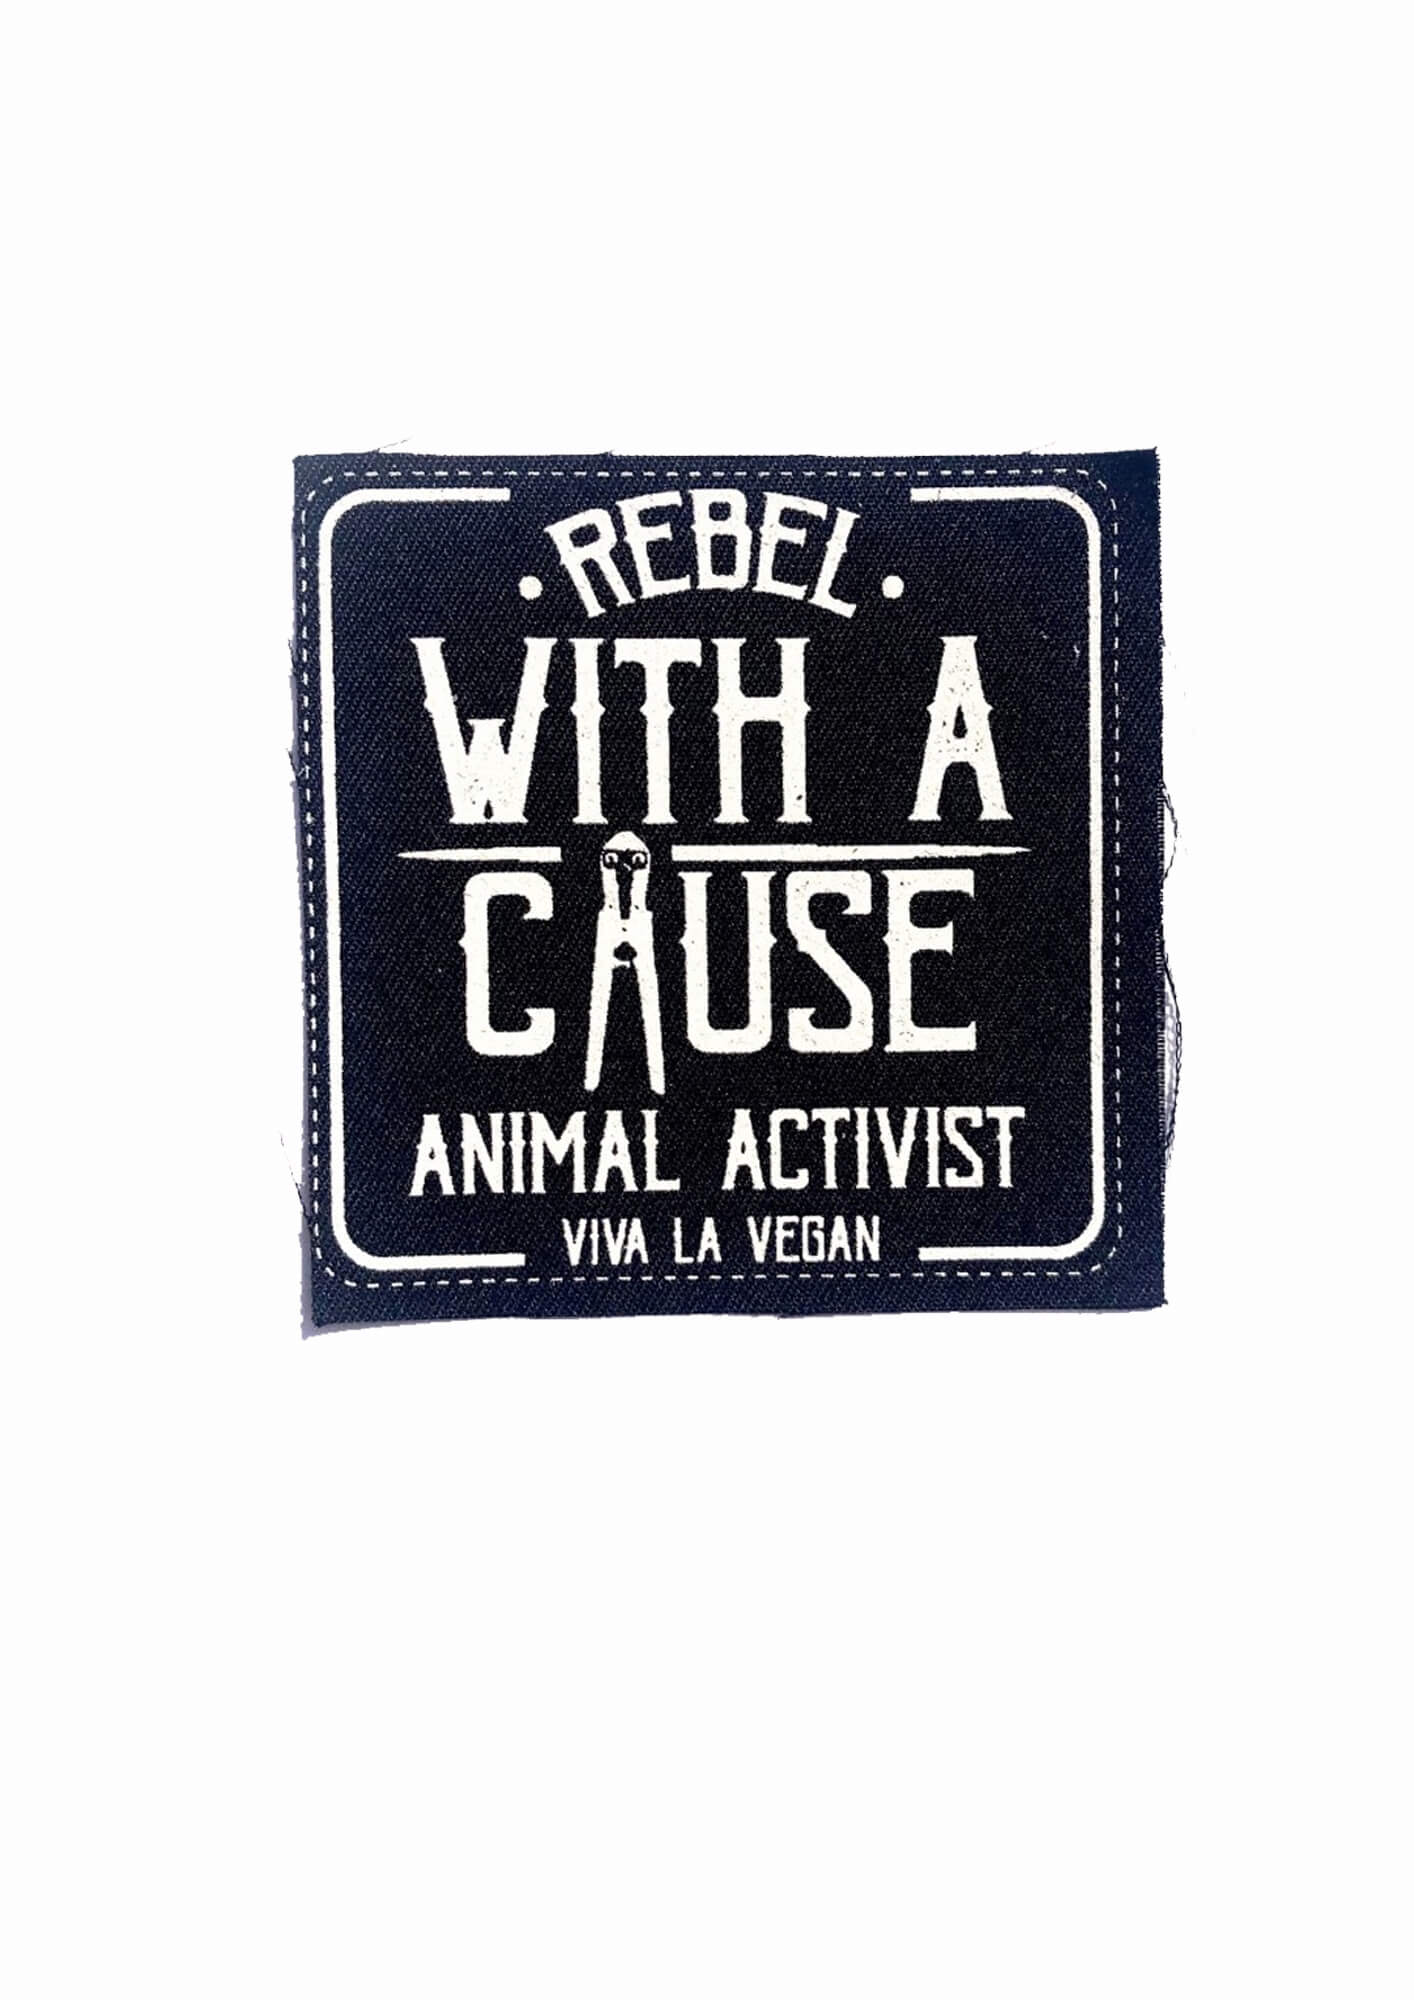 Printed Patch Square - Rebel With A Cause by eco-ethical brand Viva La Vegan